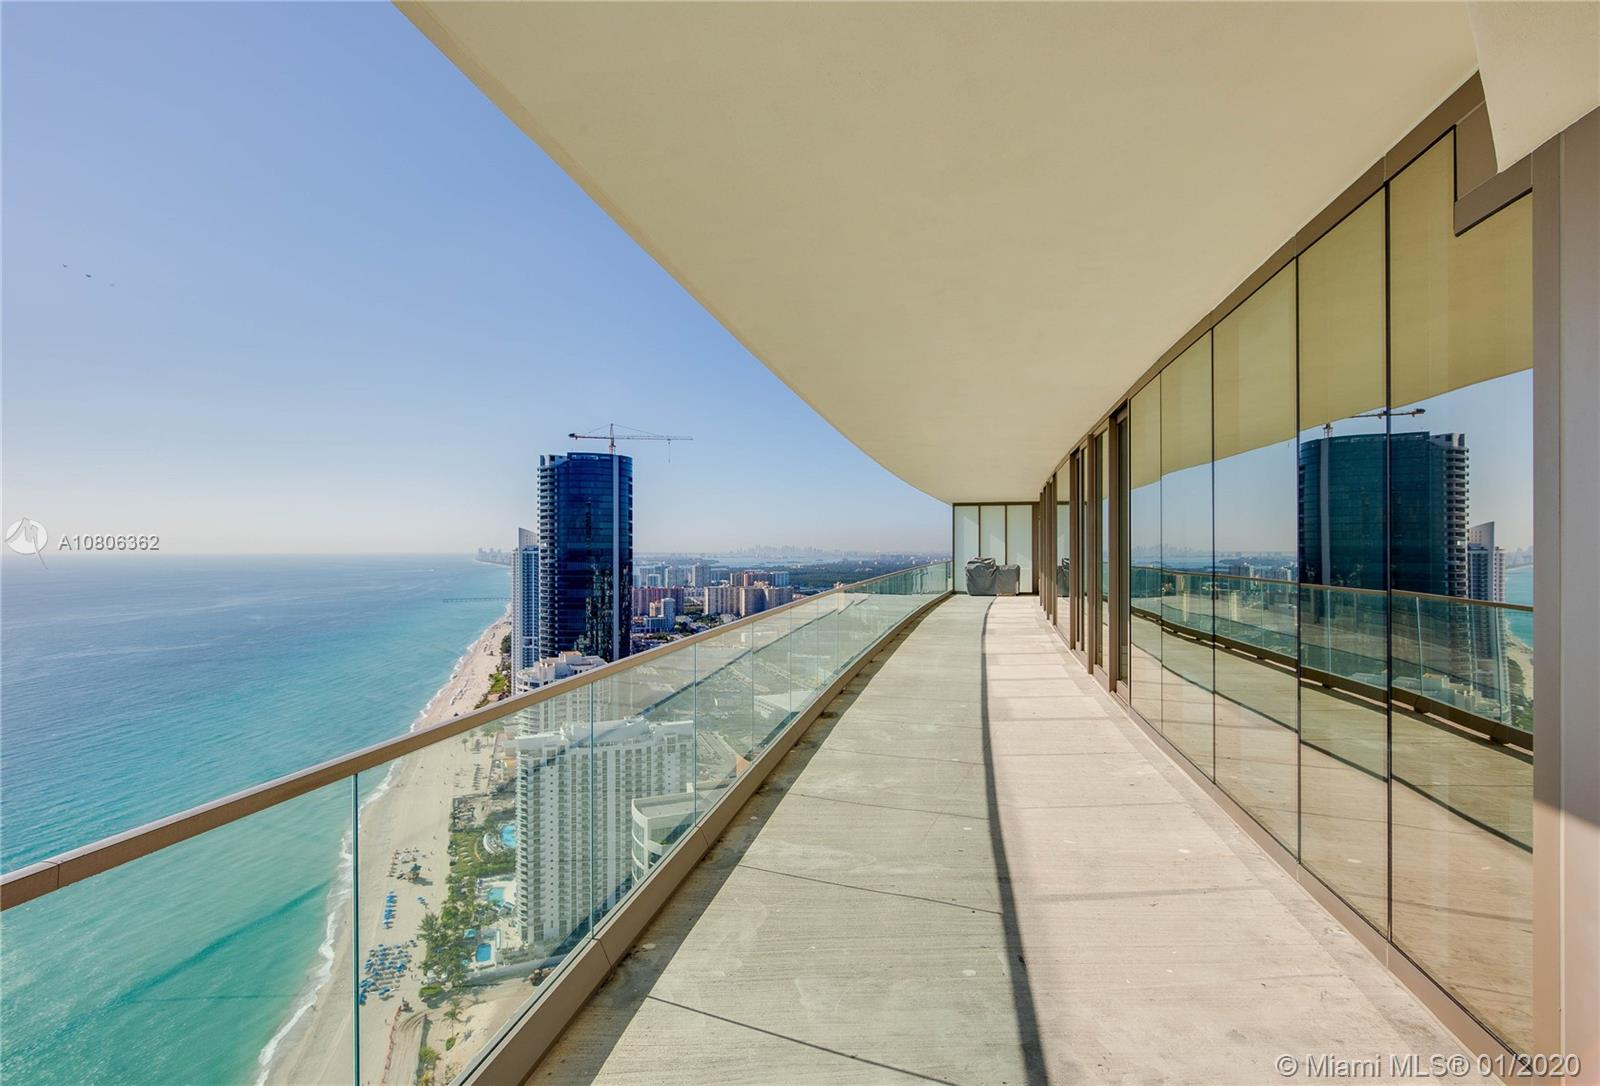 World renowned Giorgio Armani and Architect Cesar Pelli collaborate to design one of the most coveted towers in Sunny Isles Beach. This extraordinary condo features 4 bedrooms + den, 5.5 bathrooms, intelligent climate controls with digital thermostats, motorized drapes, programmed lighting controls, floor to ceiling windows, and 2 large open glass-edge balconies with summer kitchen. The top of the line kitchen has Wolf appliances, natural stone countertops, Sub-Zero refrigerator and wine cooler. Enjoy Armani Casa world class amenities including: 24/7 Concierge Services, Spa, Fitness Center, Swimming Pool with Sundeck, Children's Playground Theatre, Beachside Service, Cigar and Wine Rooms, Oceanfront Restaurant & Bar. 5,341sqft.